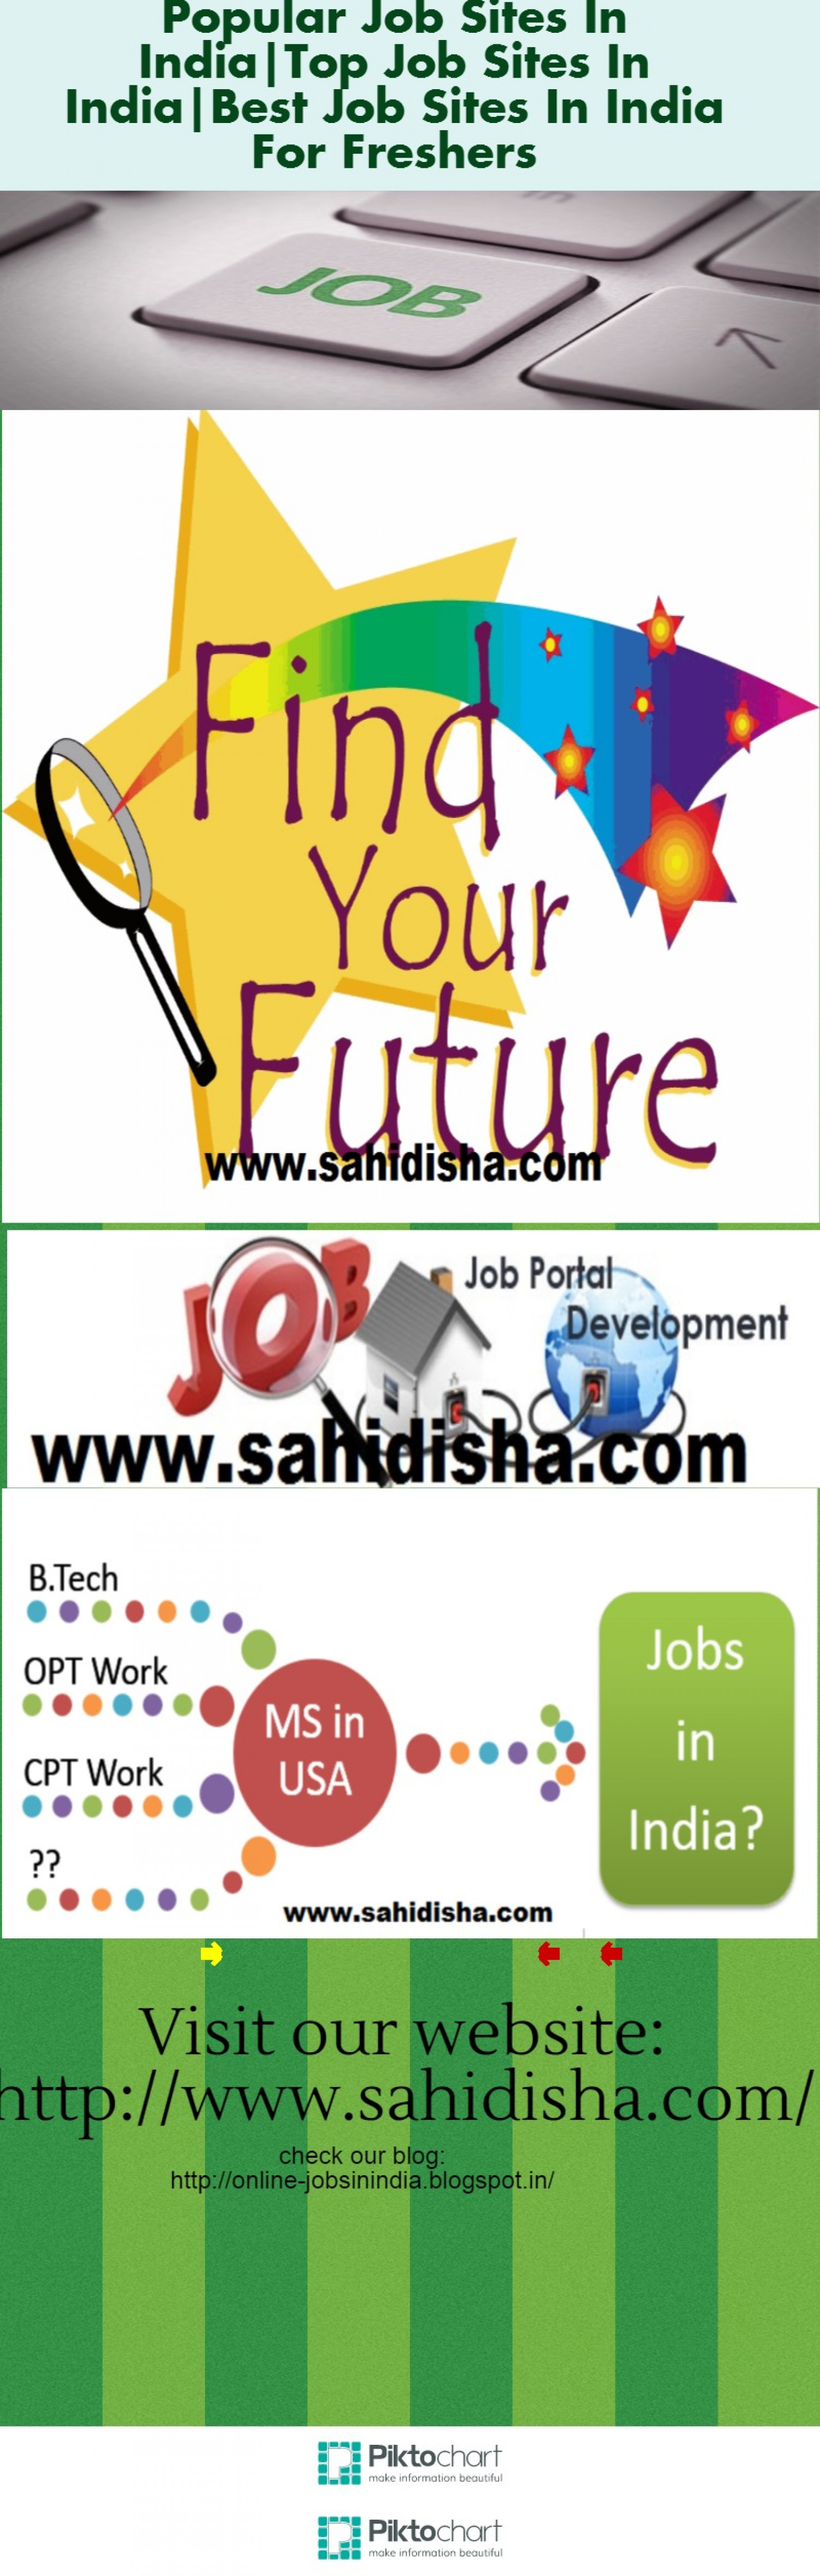 job posting sites list in sample customer service resume job posting sites list in job search employmentcrossing popular job sites in top job sites